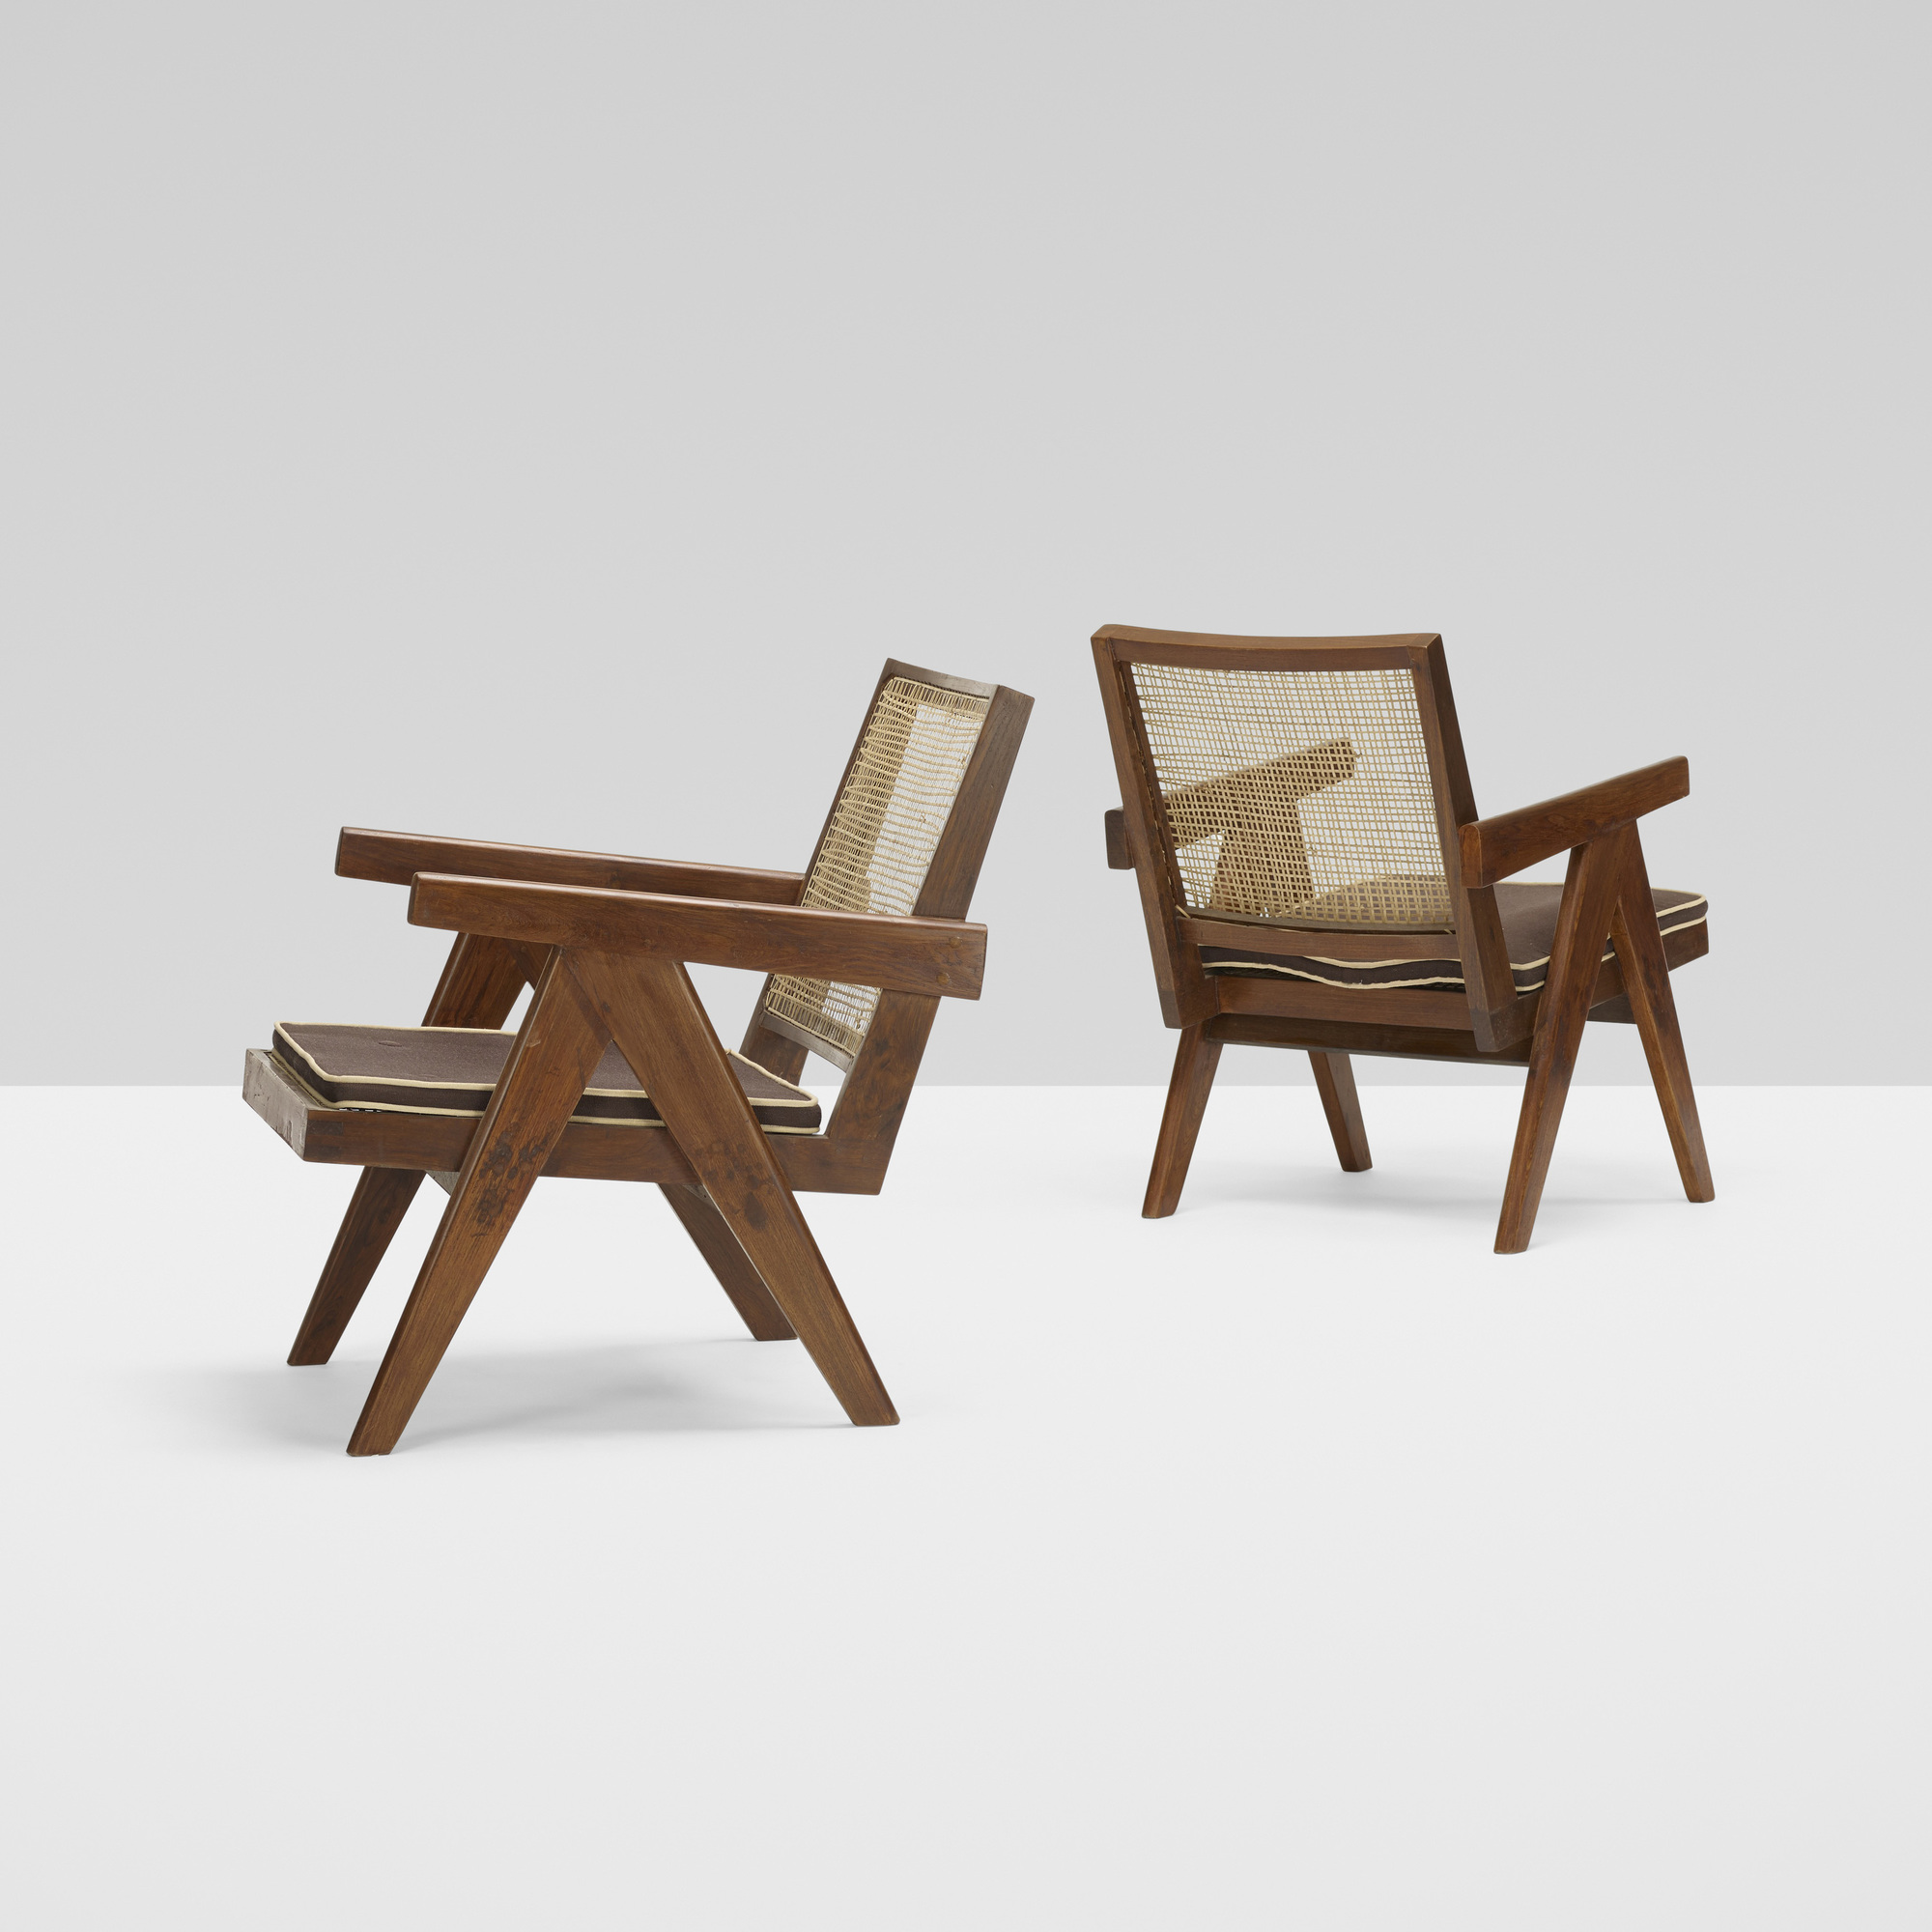 110: Pierre Jeanneret / pair of Easy armchairs from Chandiarh (2 of 3)